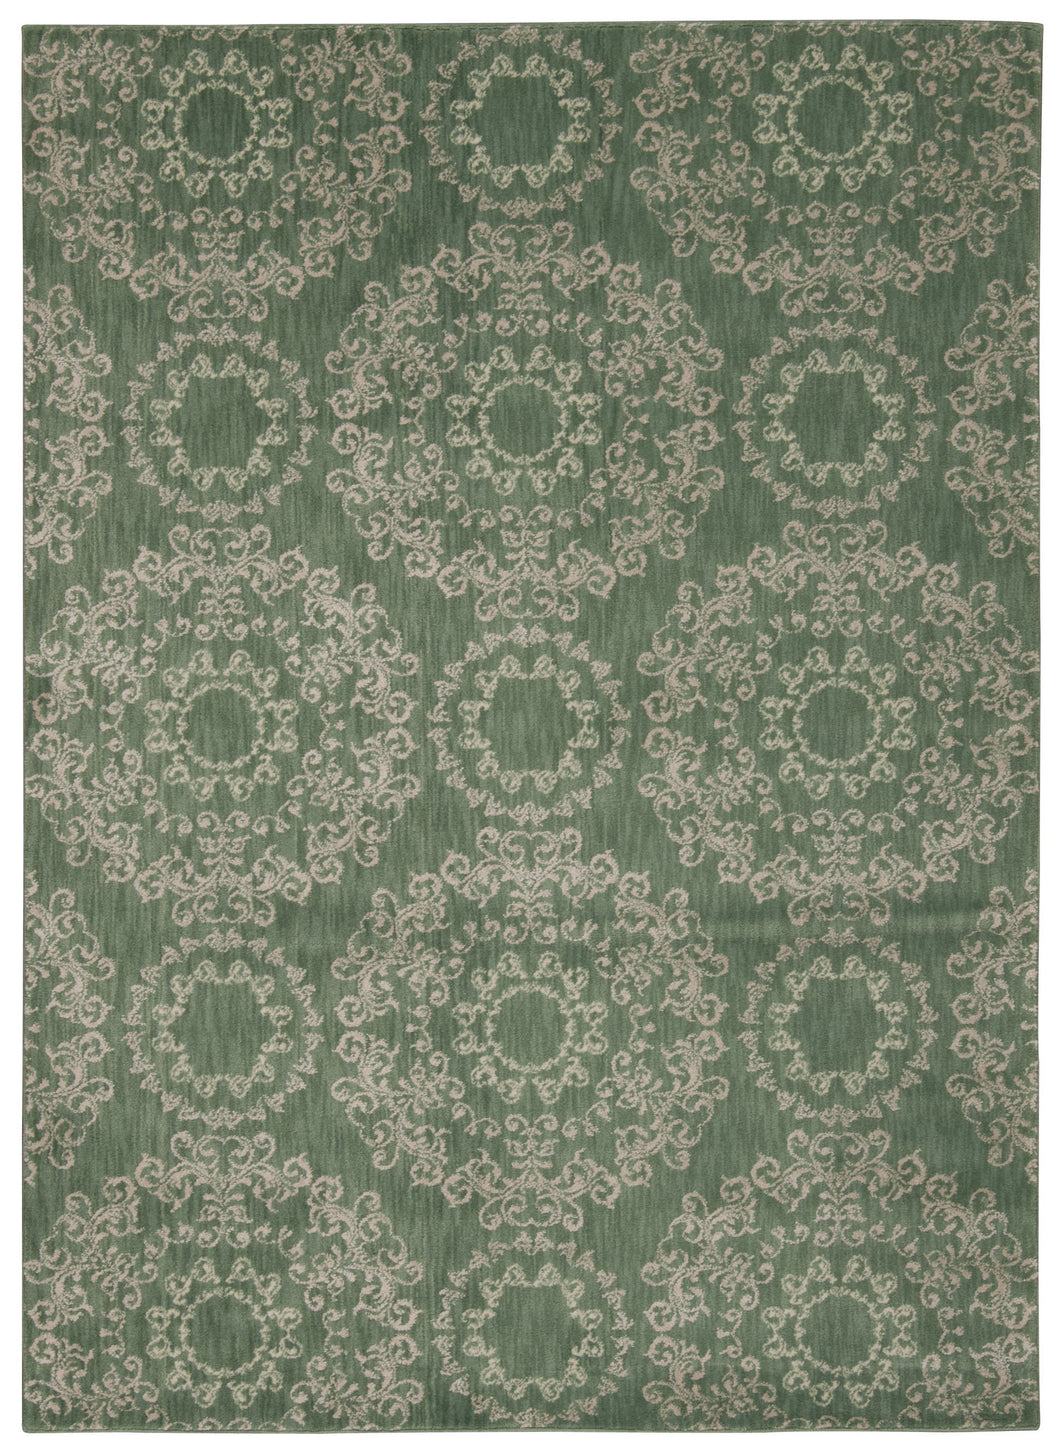 Nourison Tranquility Light Green Area Rug TNQ03 LTG